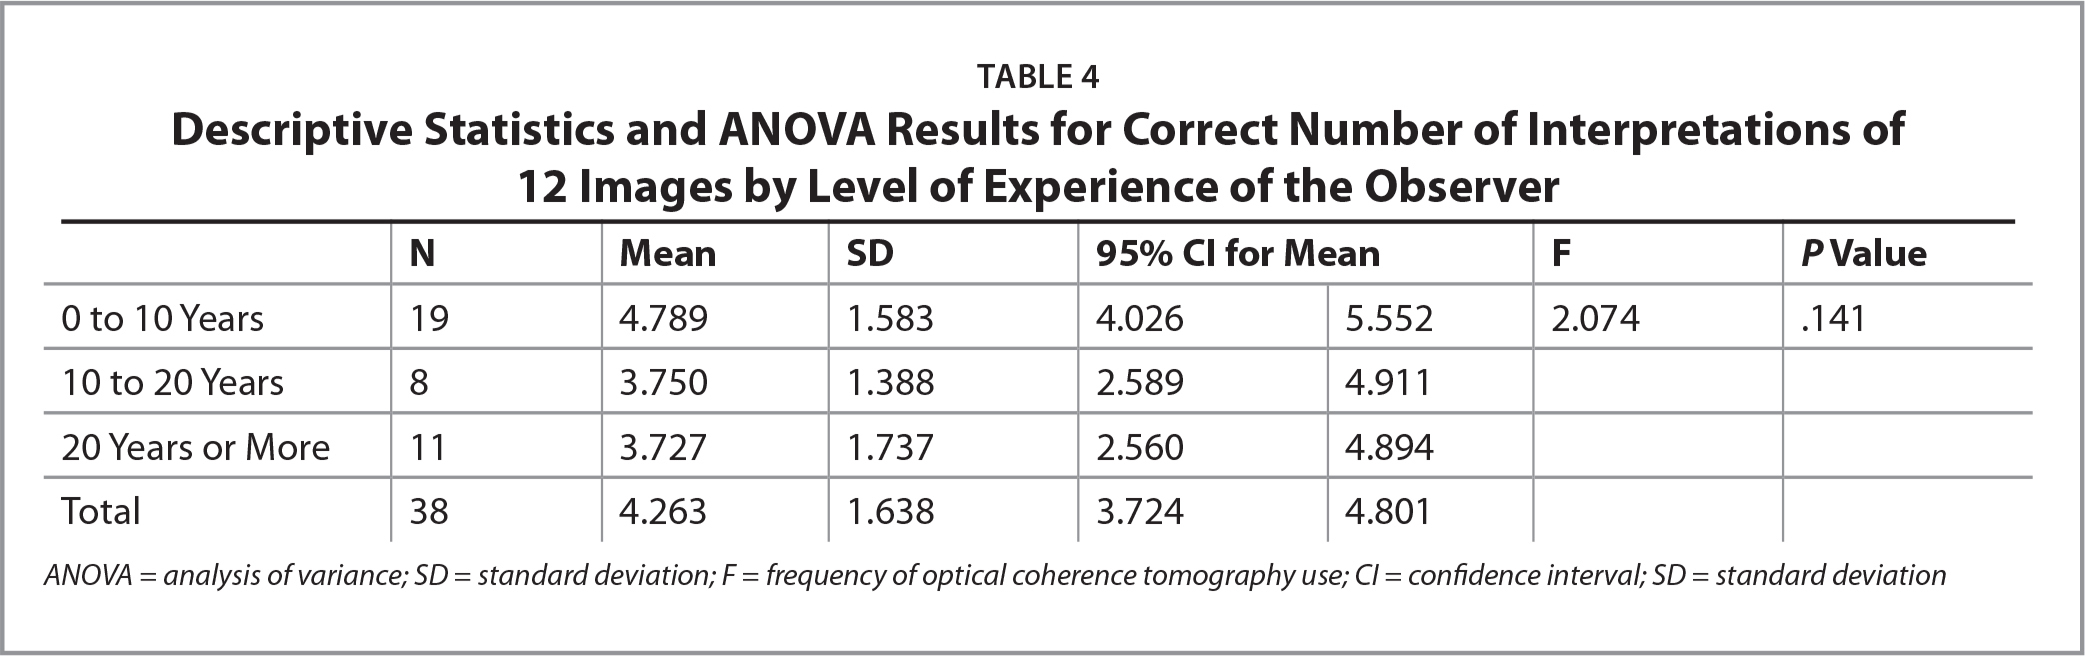 Descriptive Statistics and ANOVA Results for Correct Number of Interpretations of 12 Images by Level of Experience of the Observer